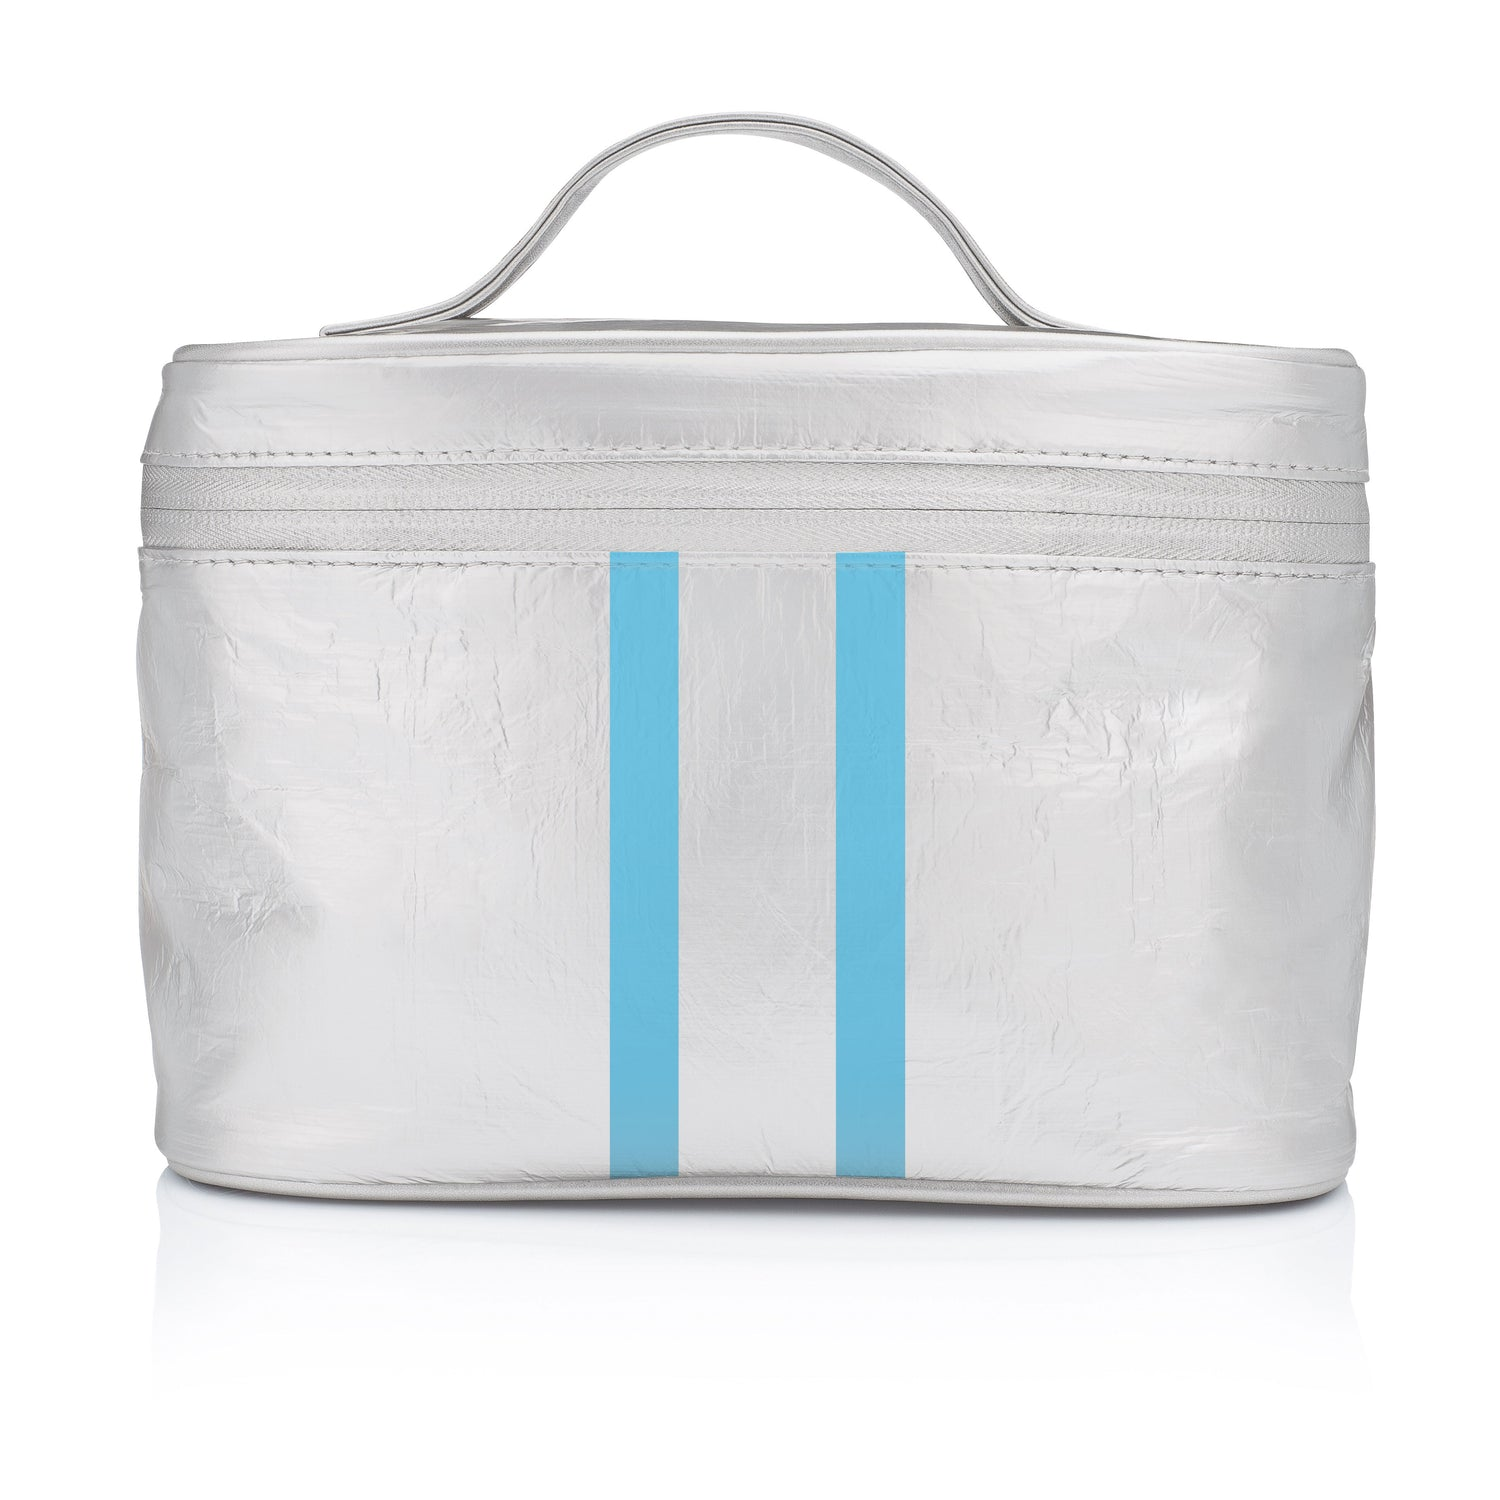 Makeup Carrier - Metallic Silver with Sky Blue Double Lines